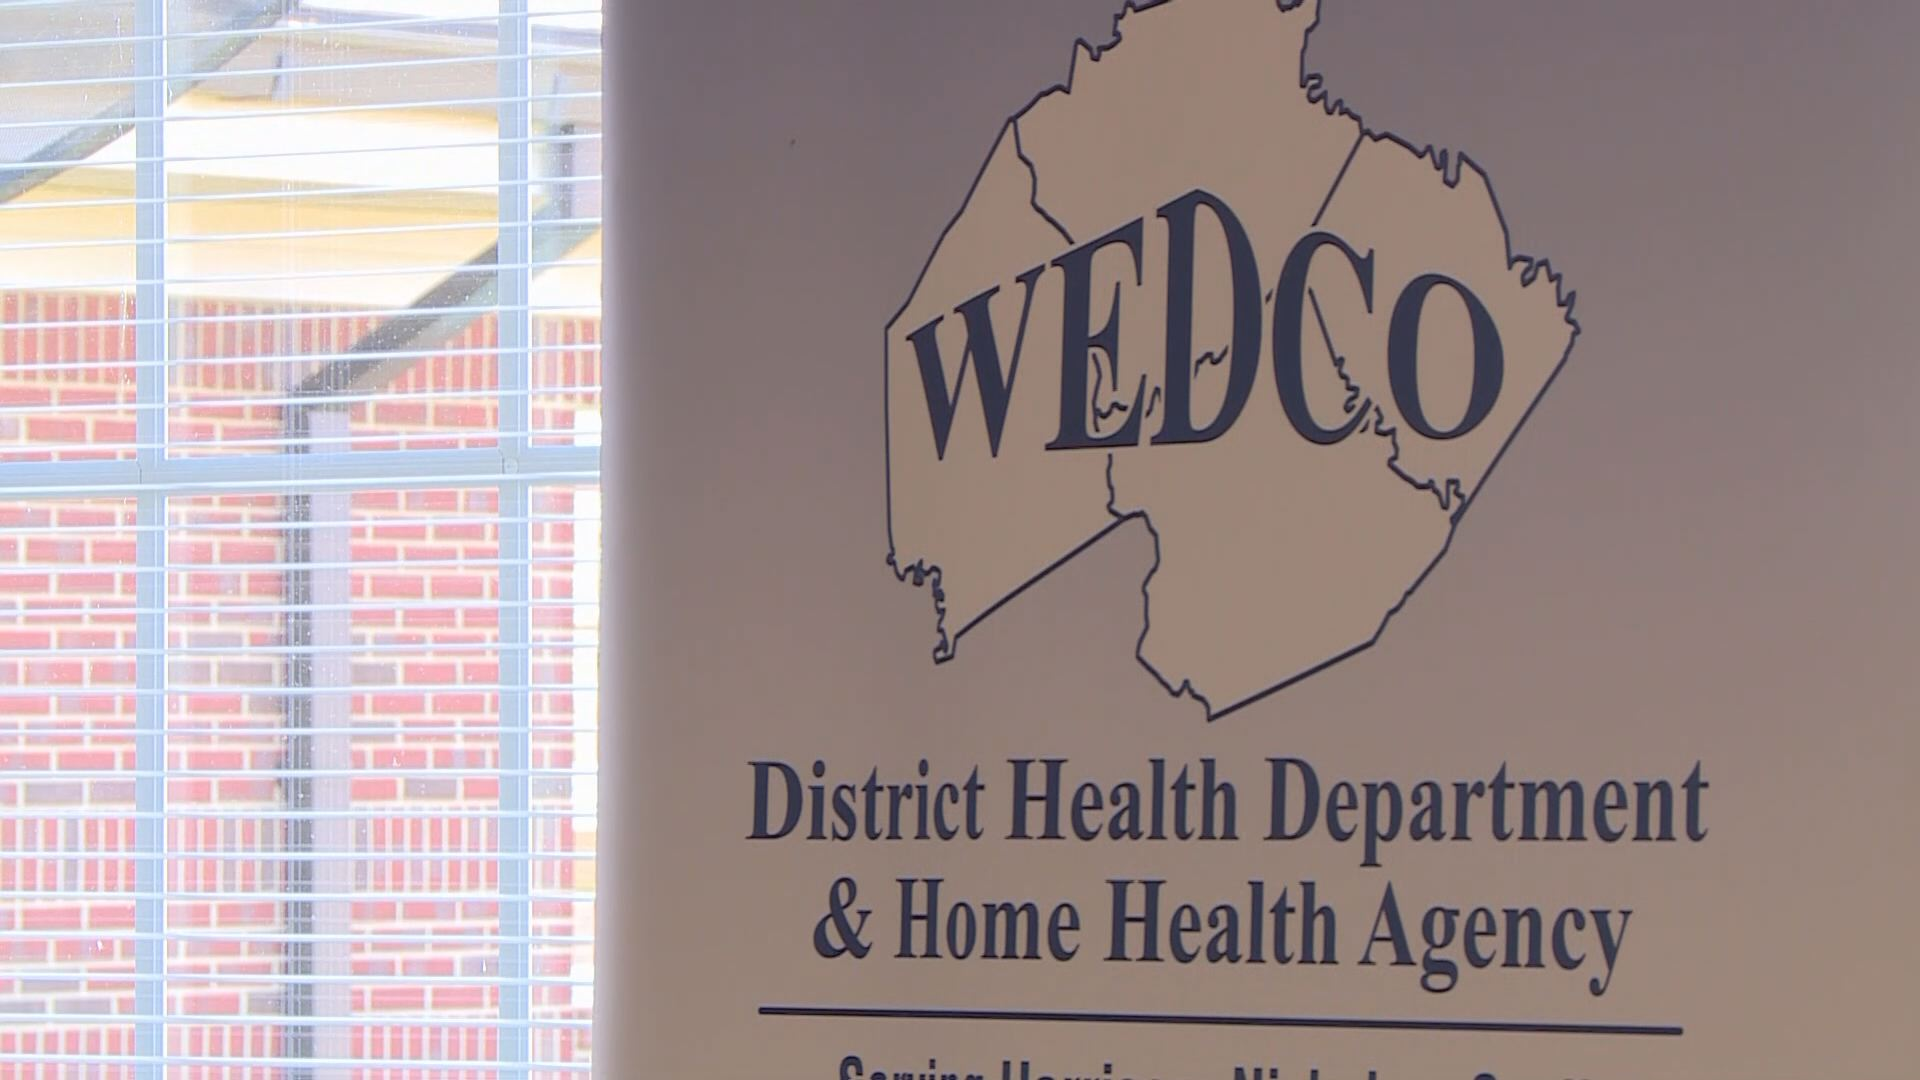 Wedco Changing How It Considers Covid 19 Cases Recovered